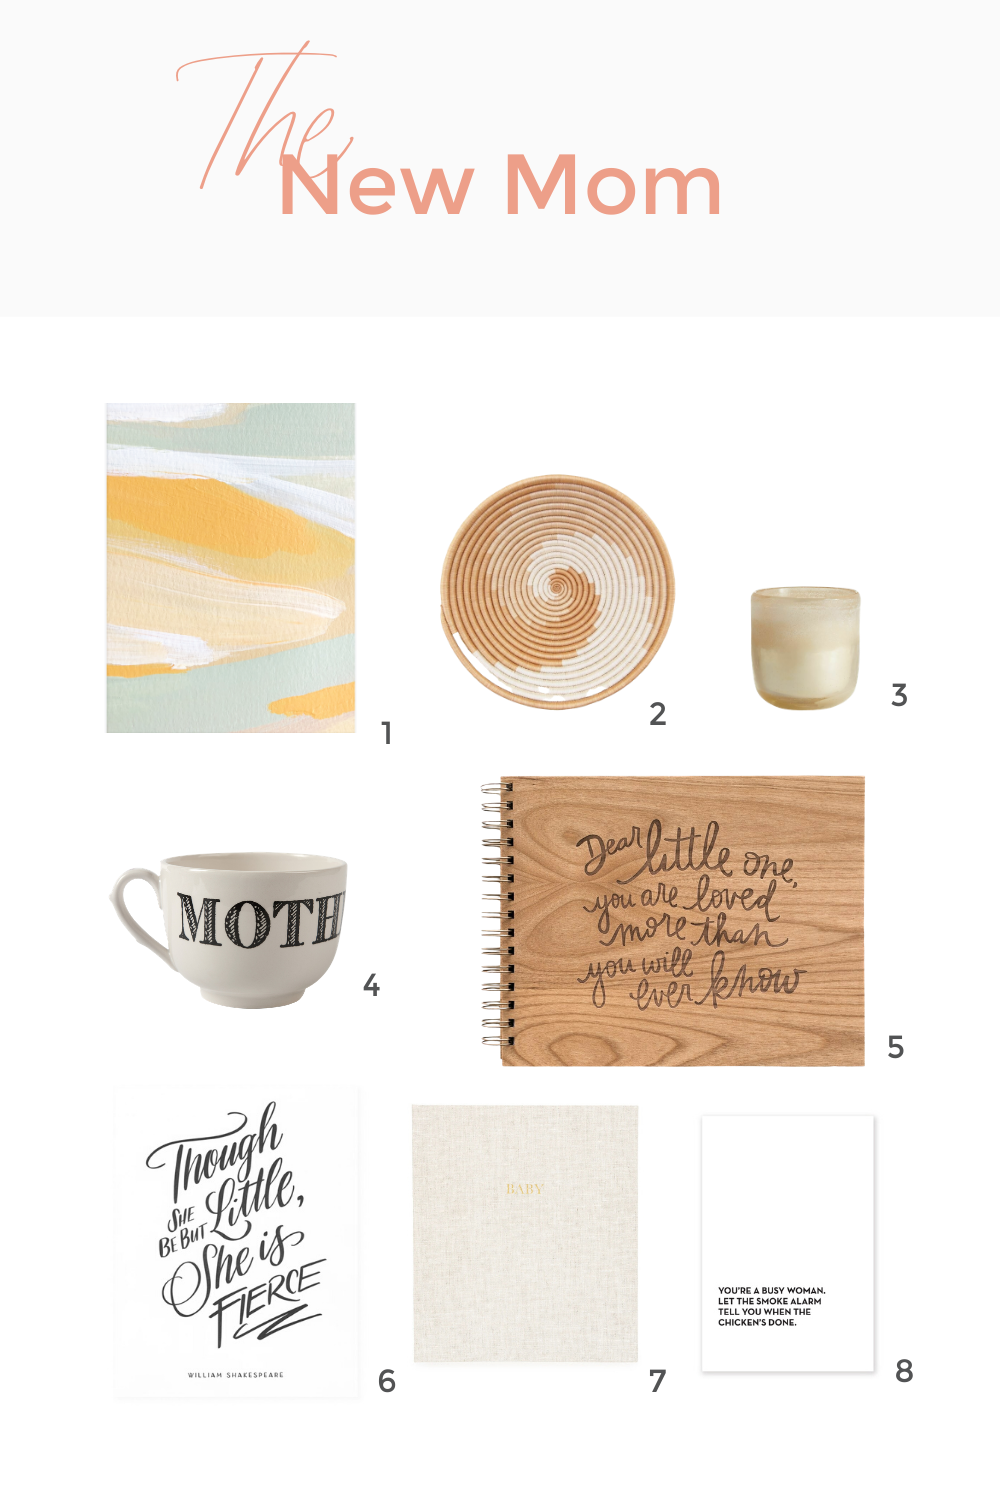 1.  Patrick Art Print . 2.  Sokoke Bowl . 3.  Coconut Milk Mango Medium Mojave Glass Candle . 4.  Mother Endearment Grand Cup . 5.  Dear Little One Baby Memory Book.  6.  Little But Fierce Letterpress Art Print . 7.  The Baby Book, Flax . 8.  Busy Woman Tea Towel .